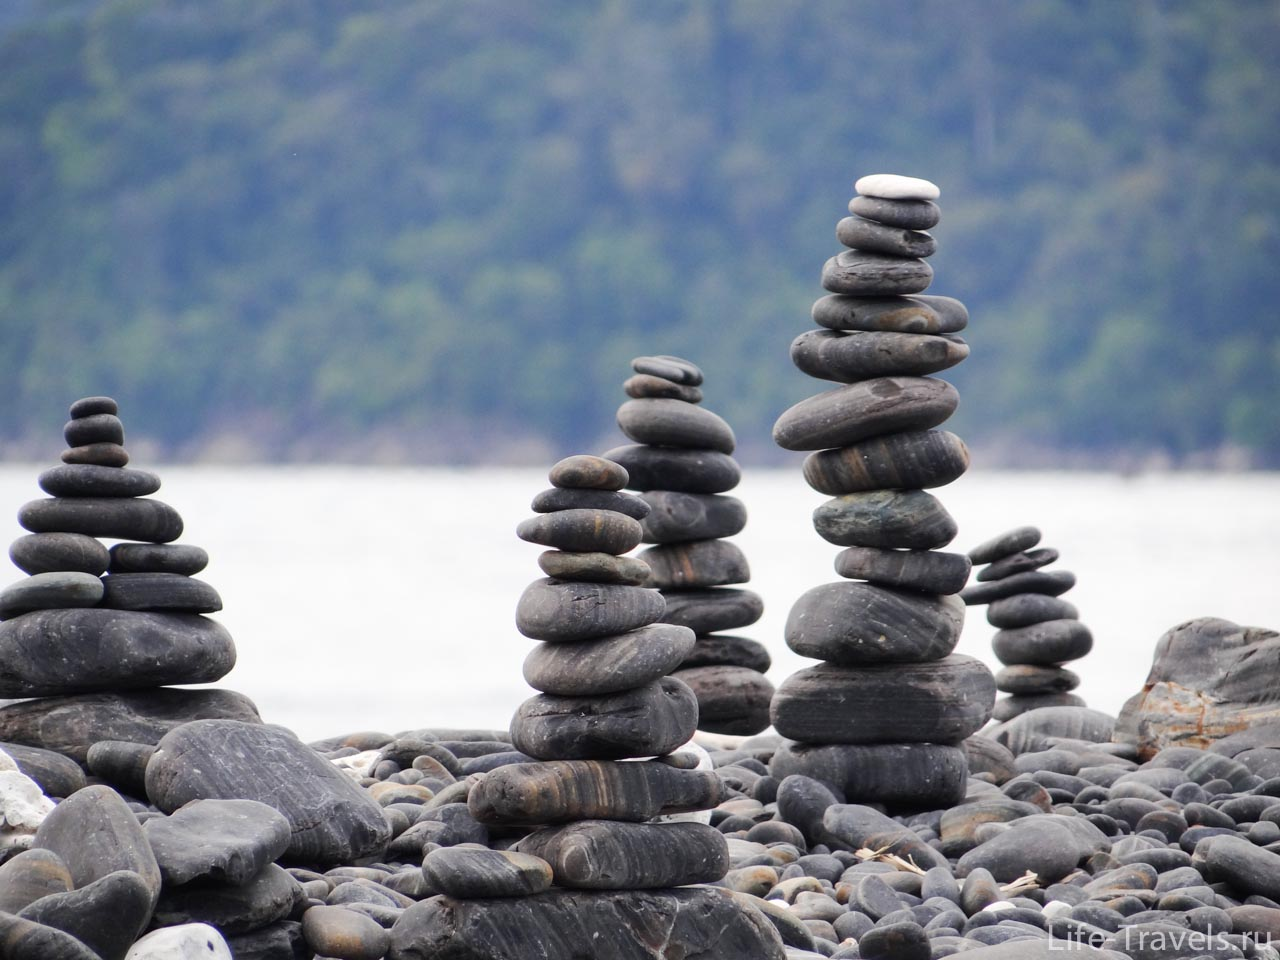 Cairns on the island